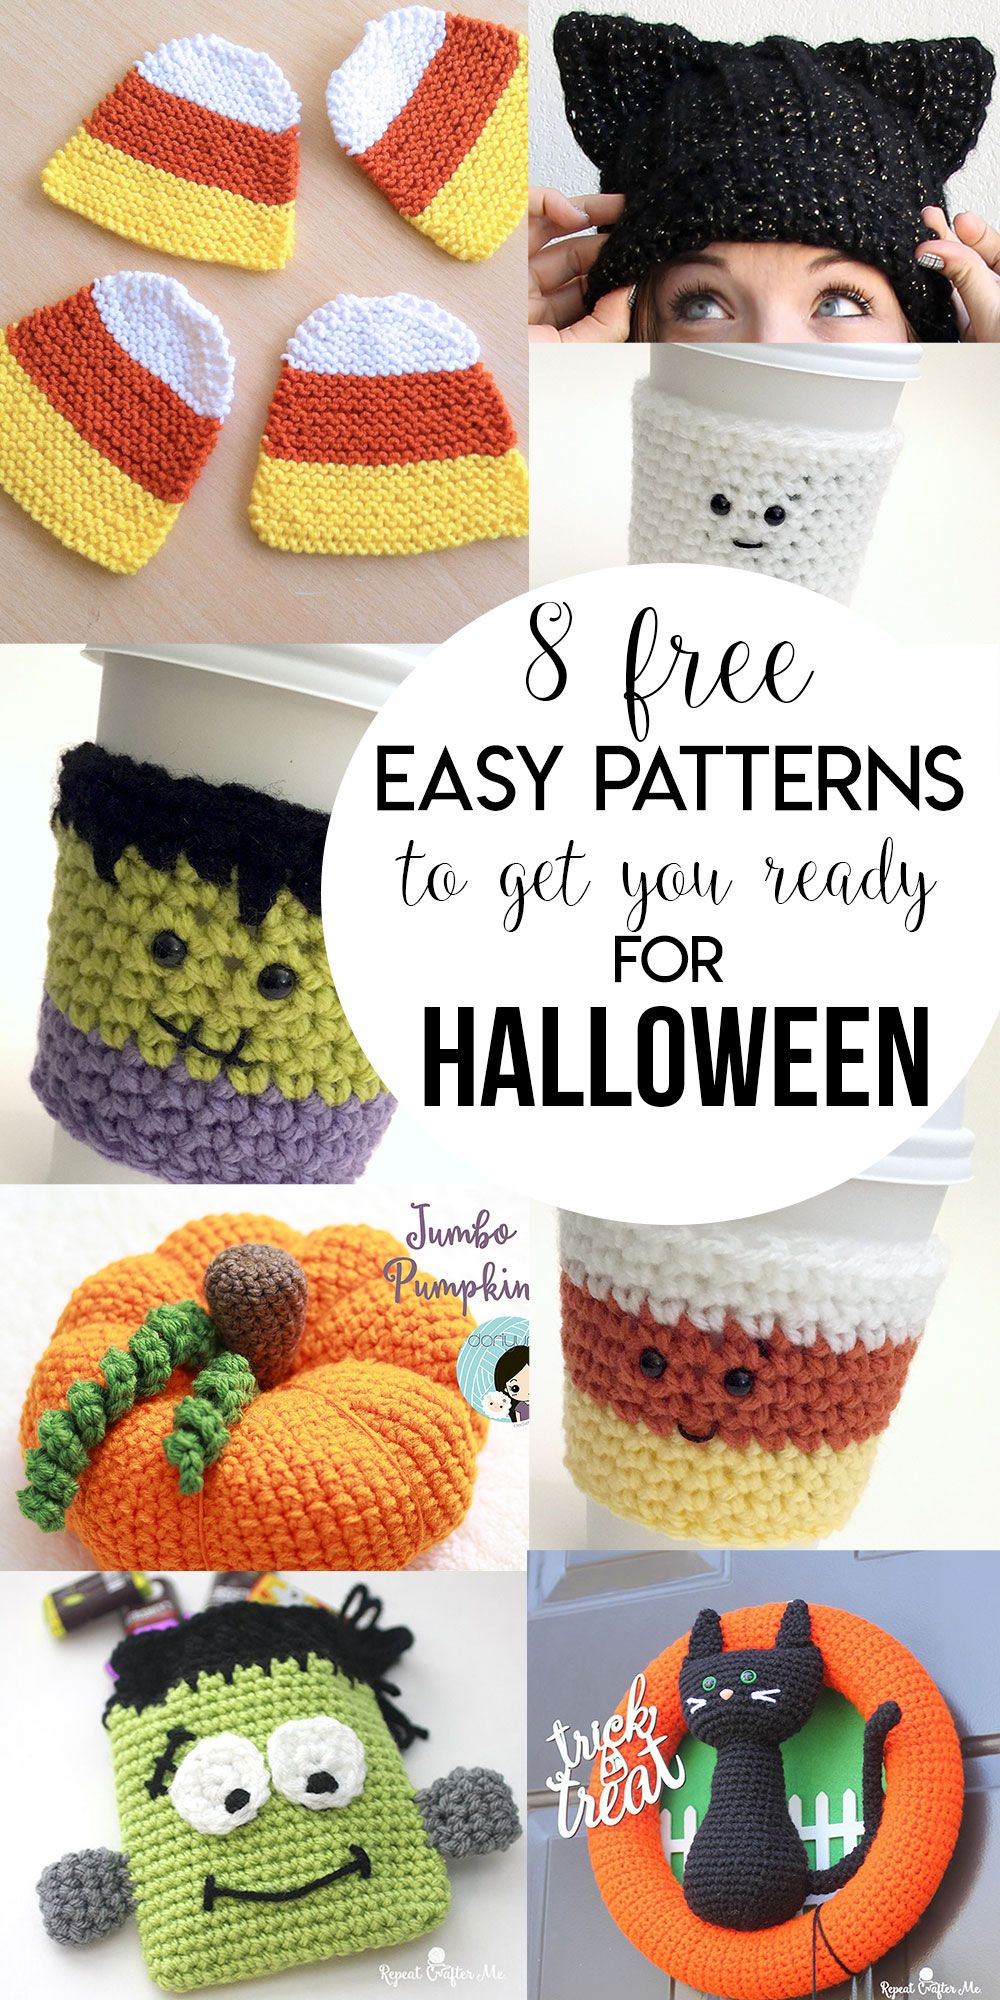 8 Free Easy Patterns To Get You Ready For Halloween | Tejido ...